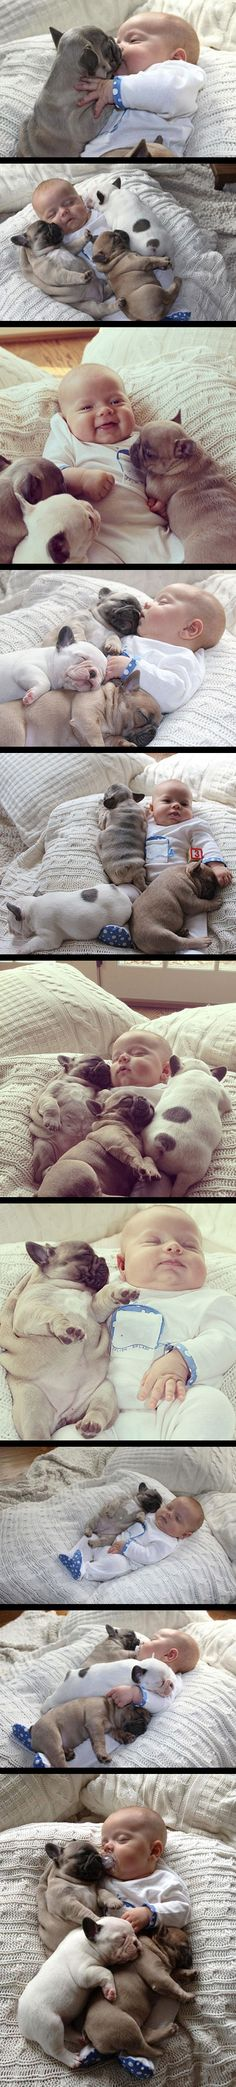 When I have kids I am adopting them a doggy lol. Adorable!!!